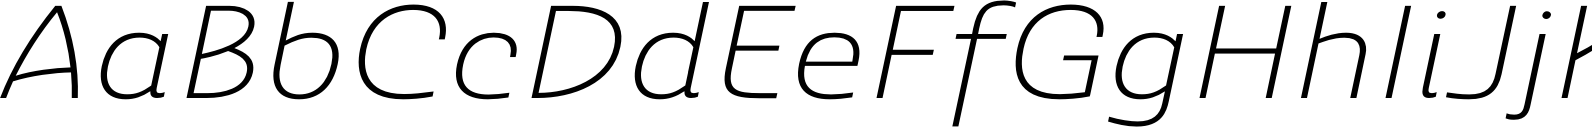 Ashemore Ext Light Italic